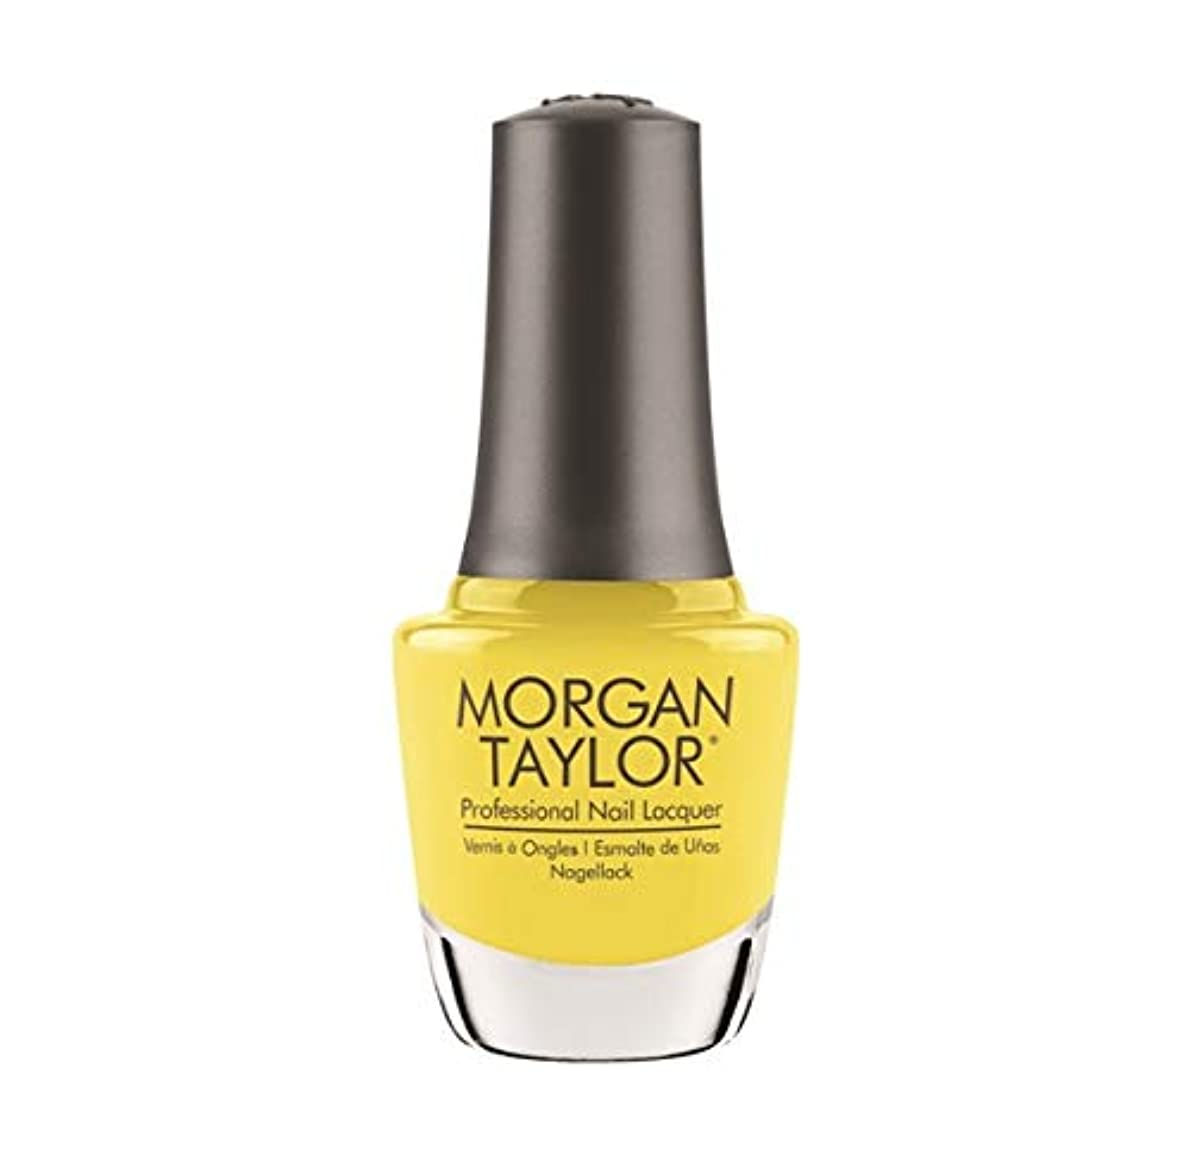 曲げる椅子極貧Morgan Taylor Nail Lacquer - Rocketman Collection - Glow Like A Star - 15ml / 0.5oz